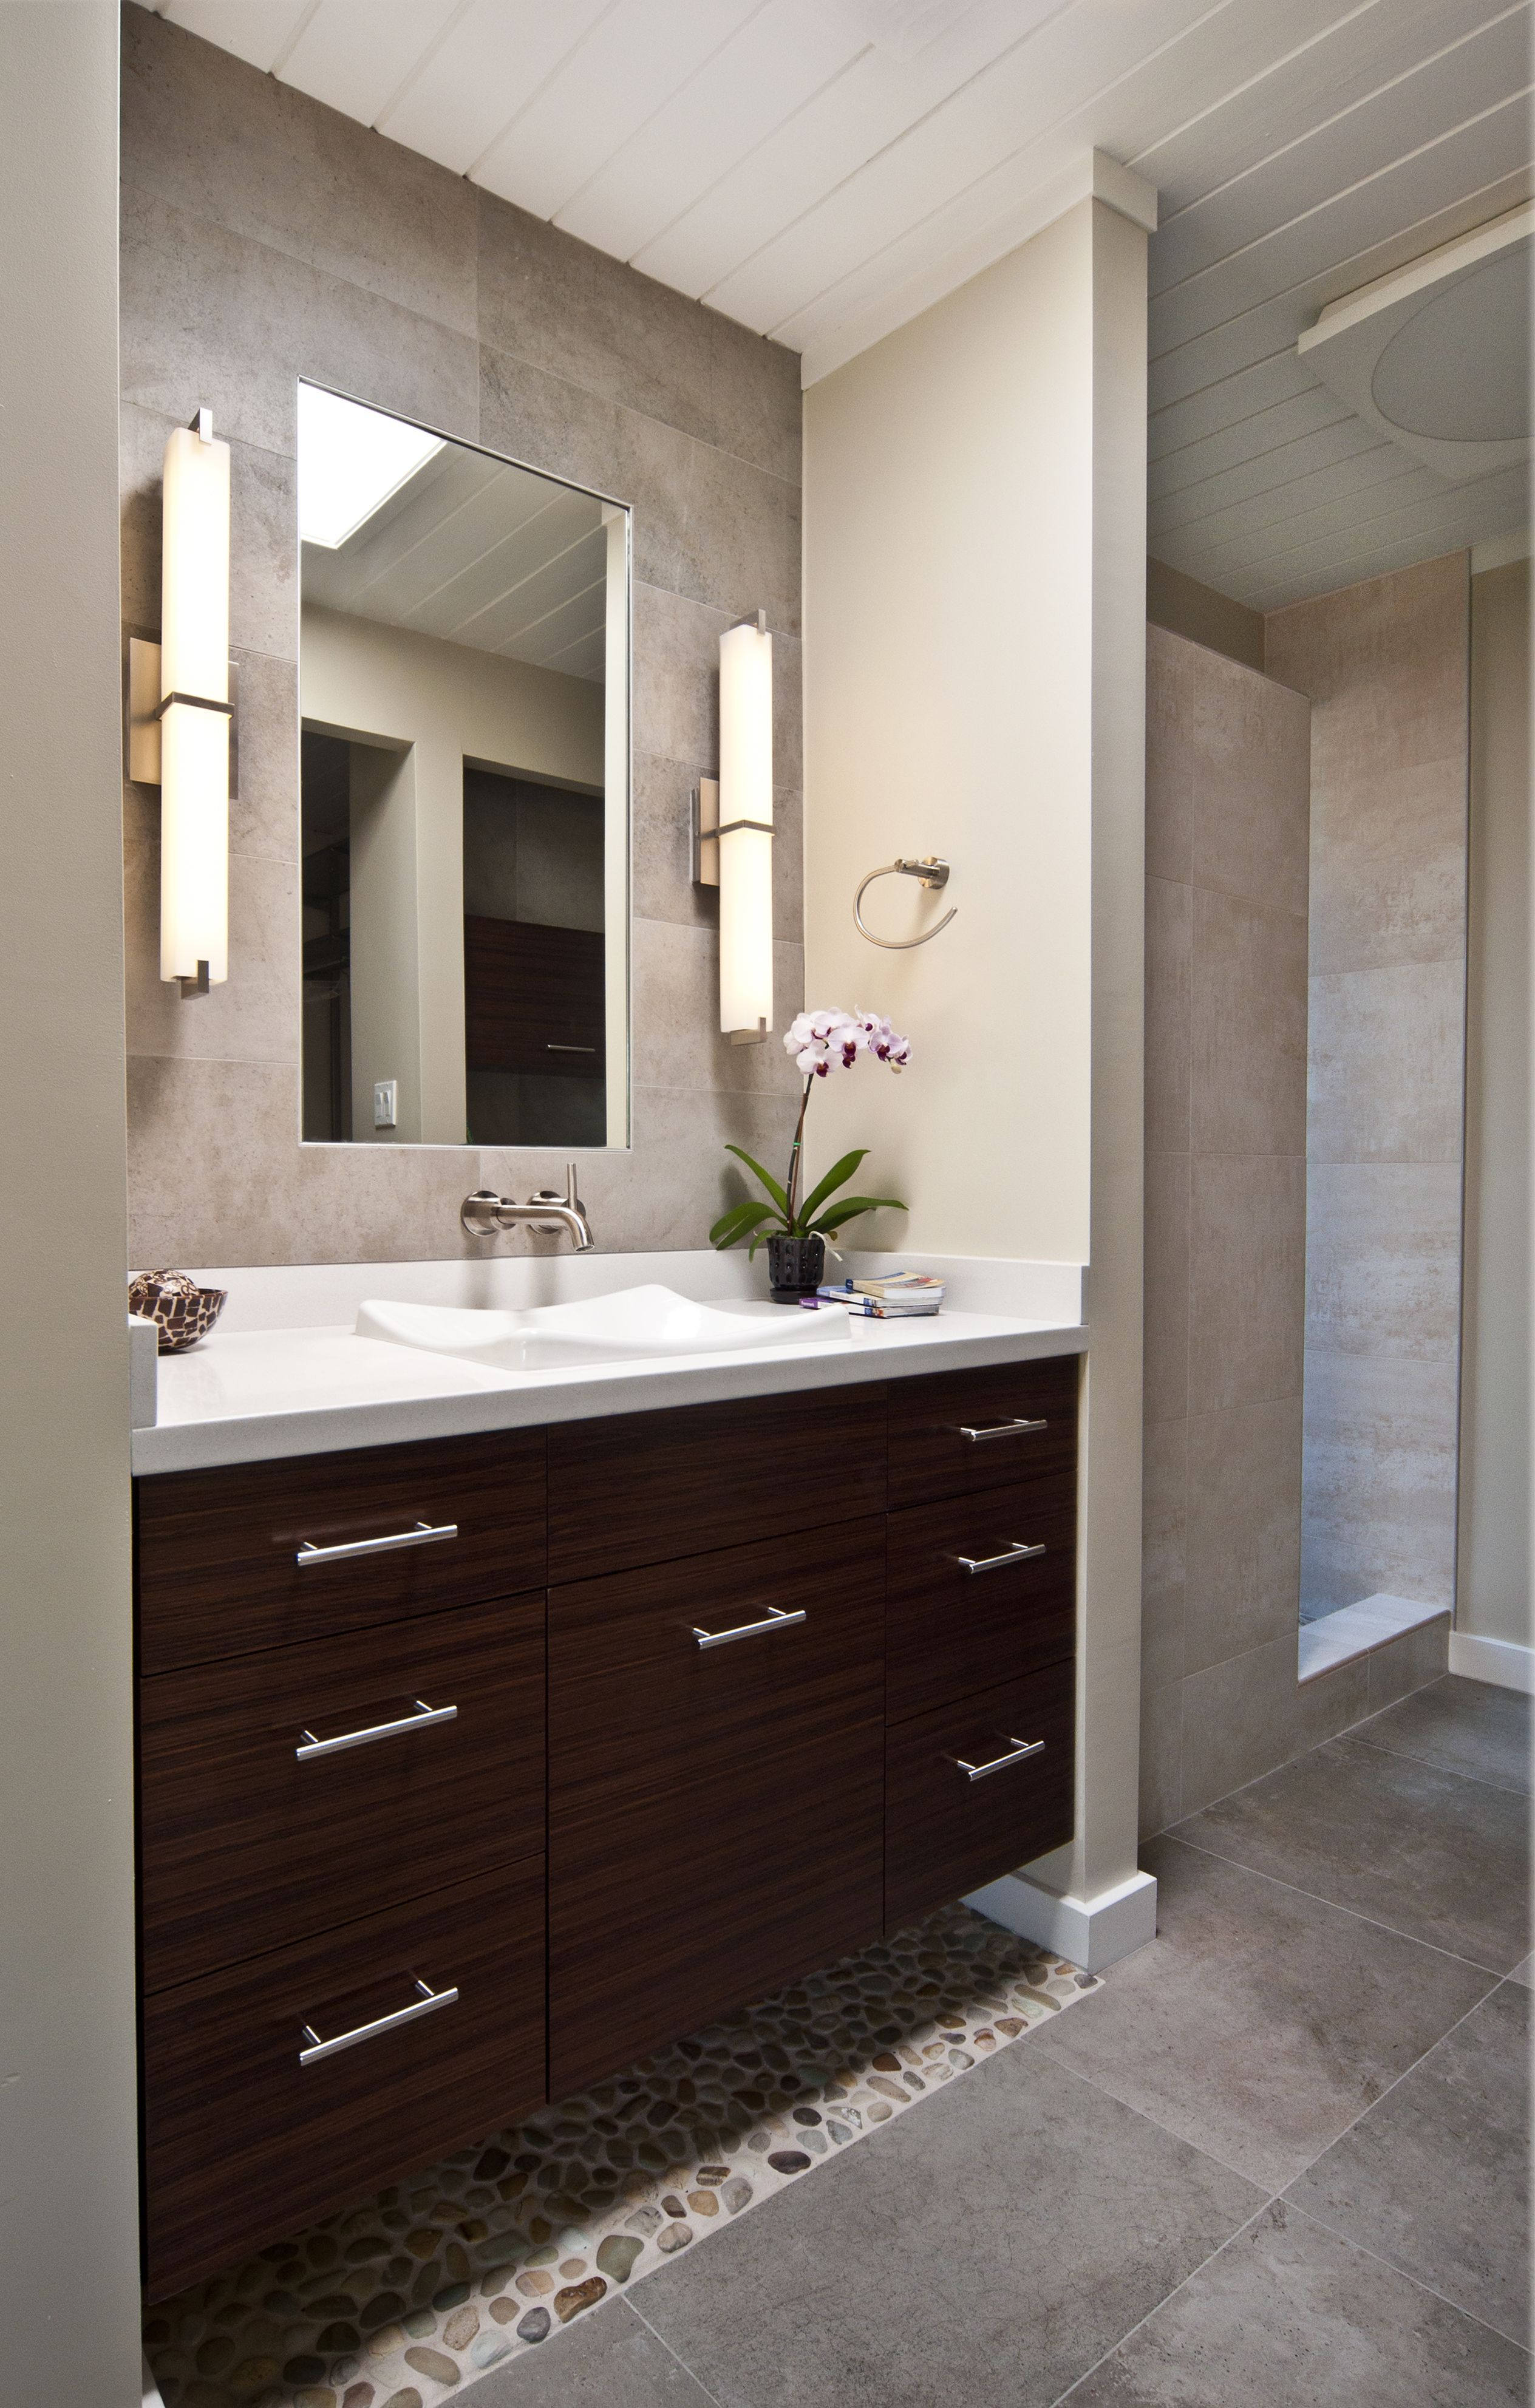 Pin By Sailaja On Bath Room With Images Bathroom Remodel Small Budget Bathroom Inspiration Modern Washbasin Design